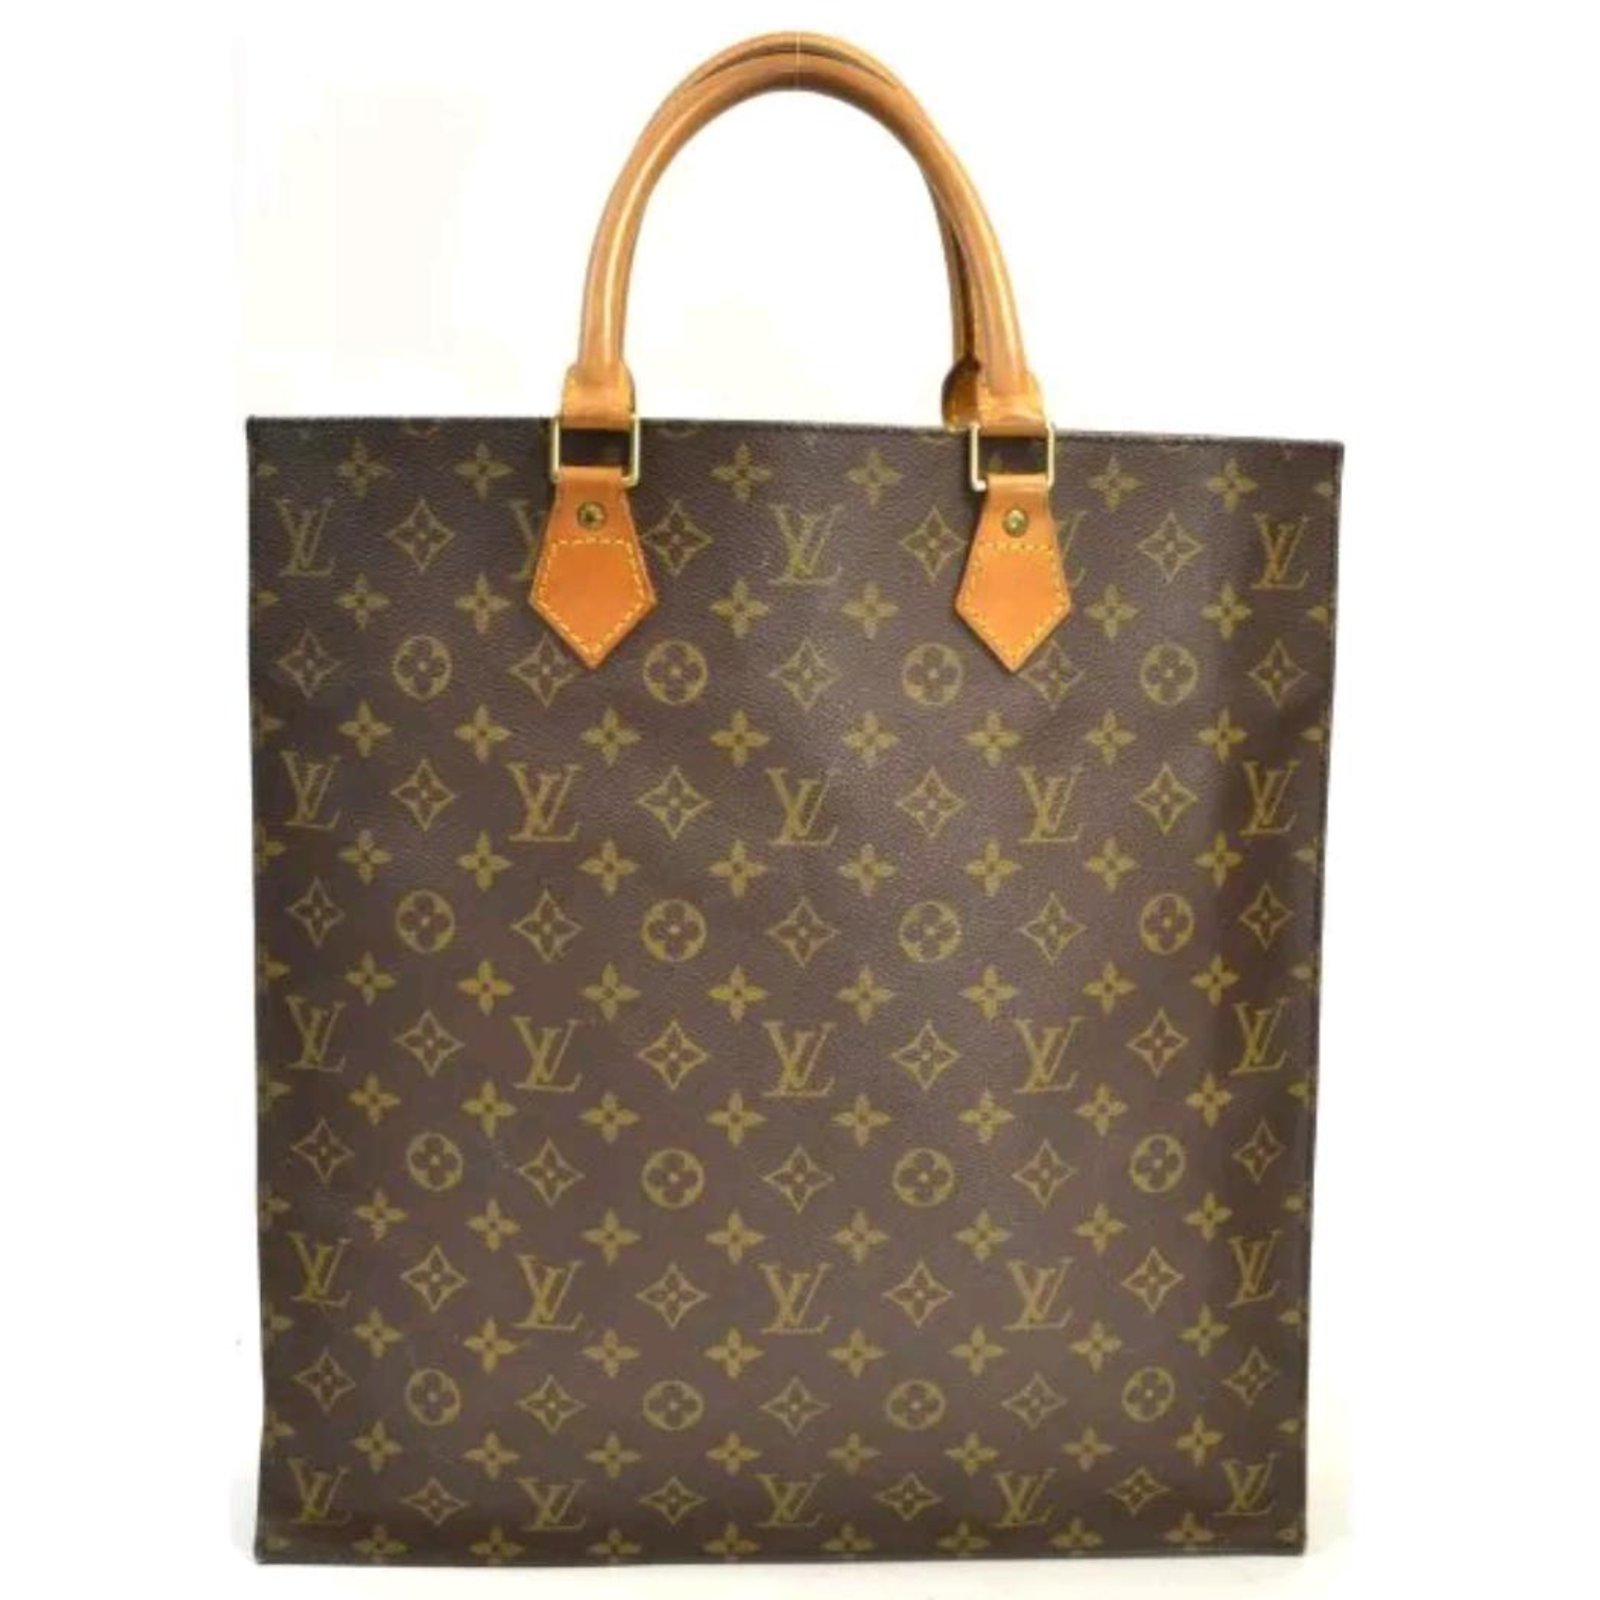 Vuitton Sac Cabas